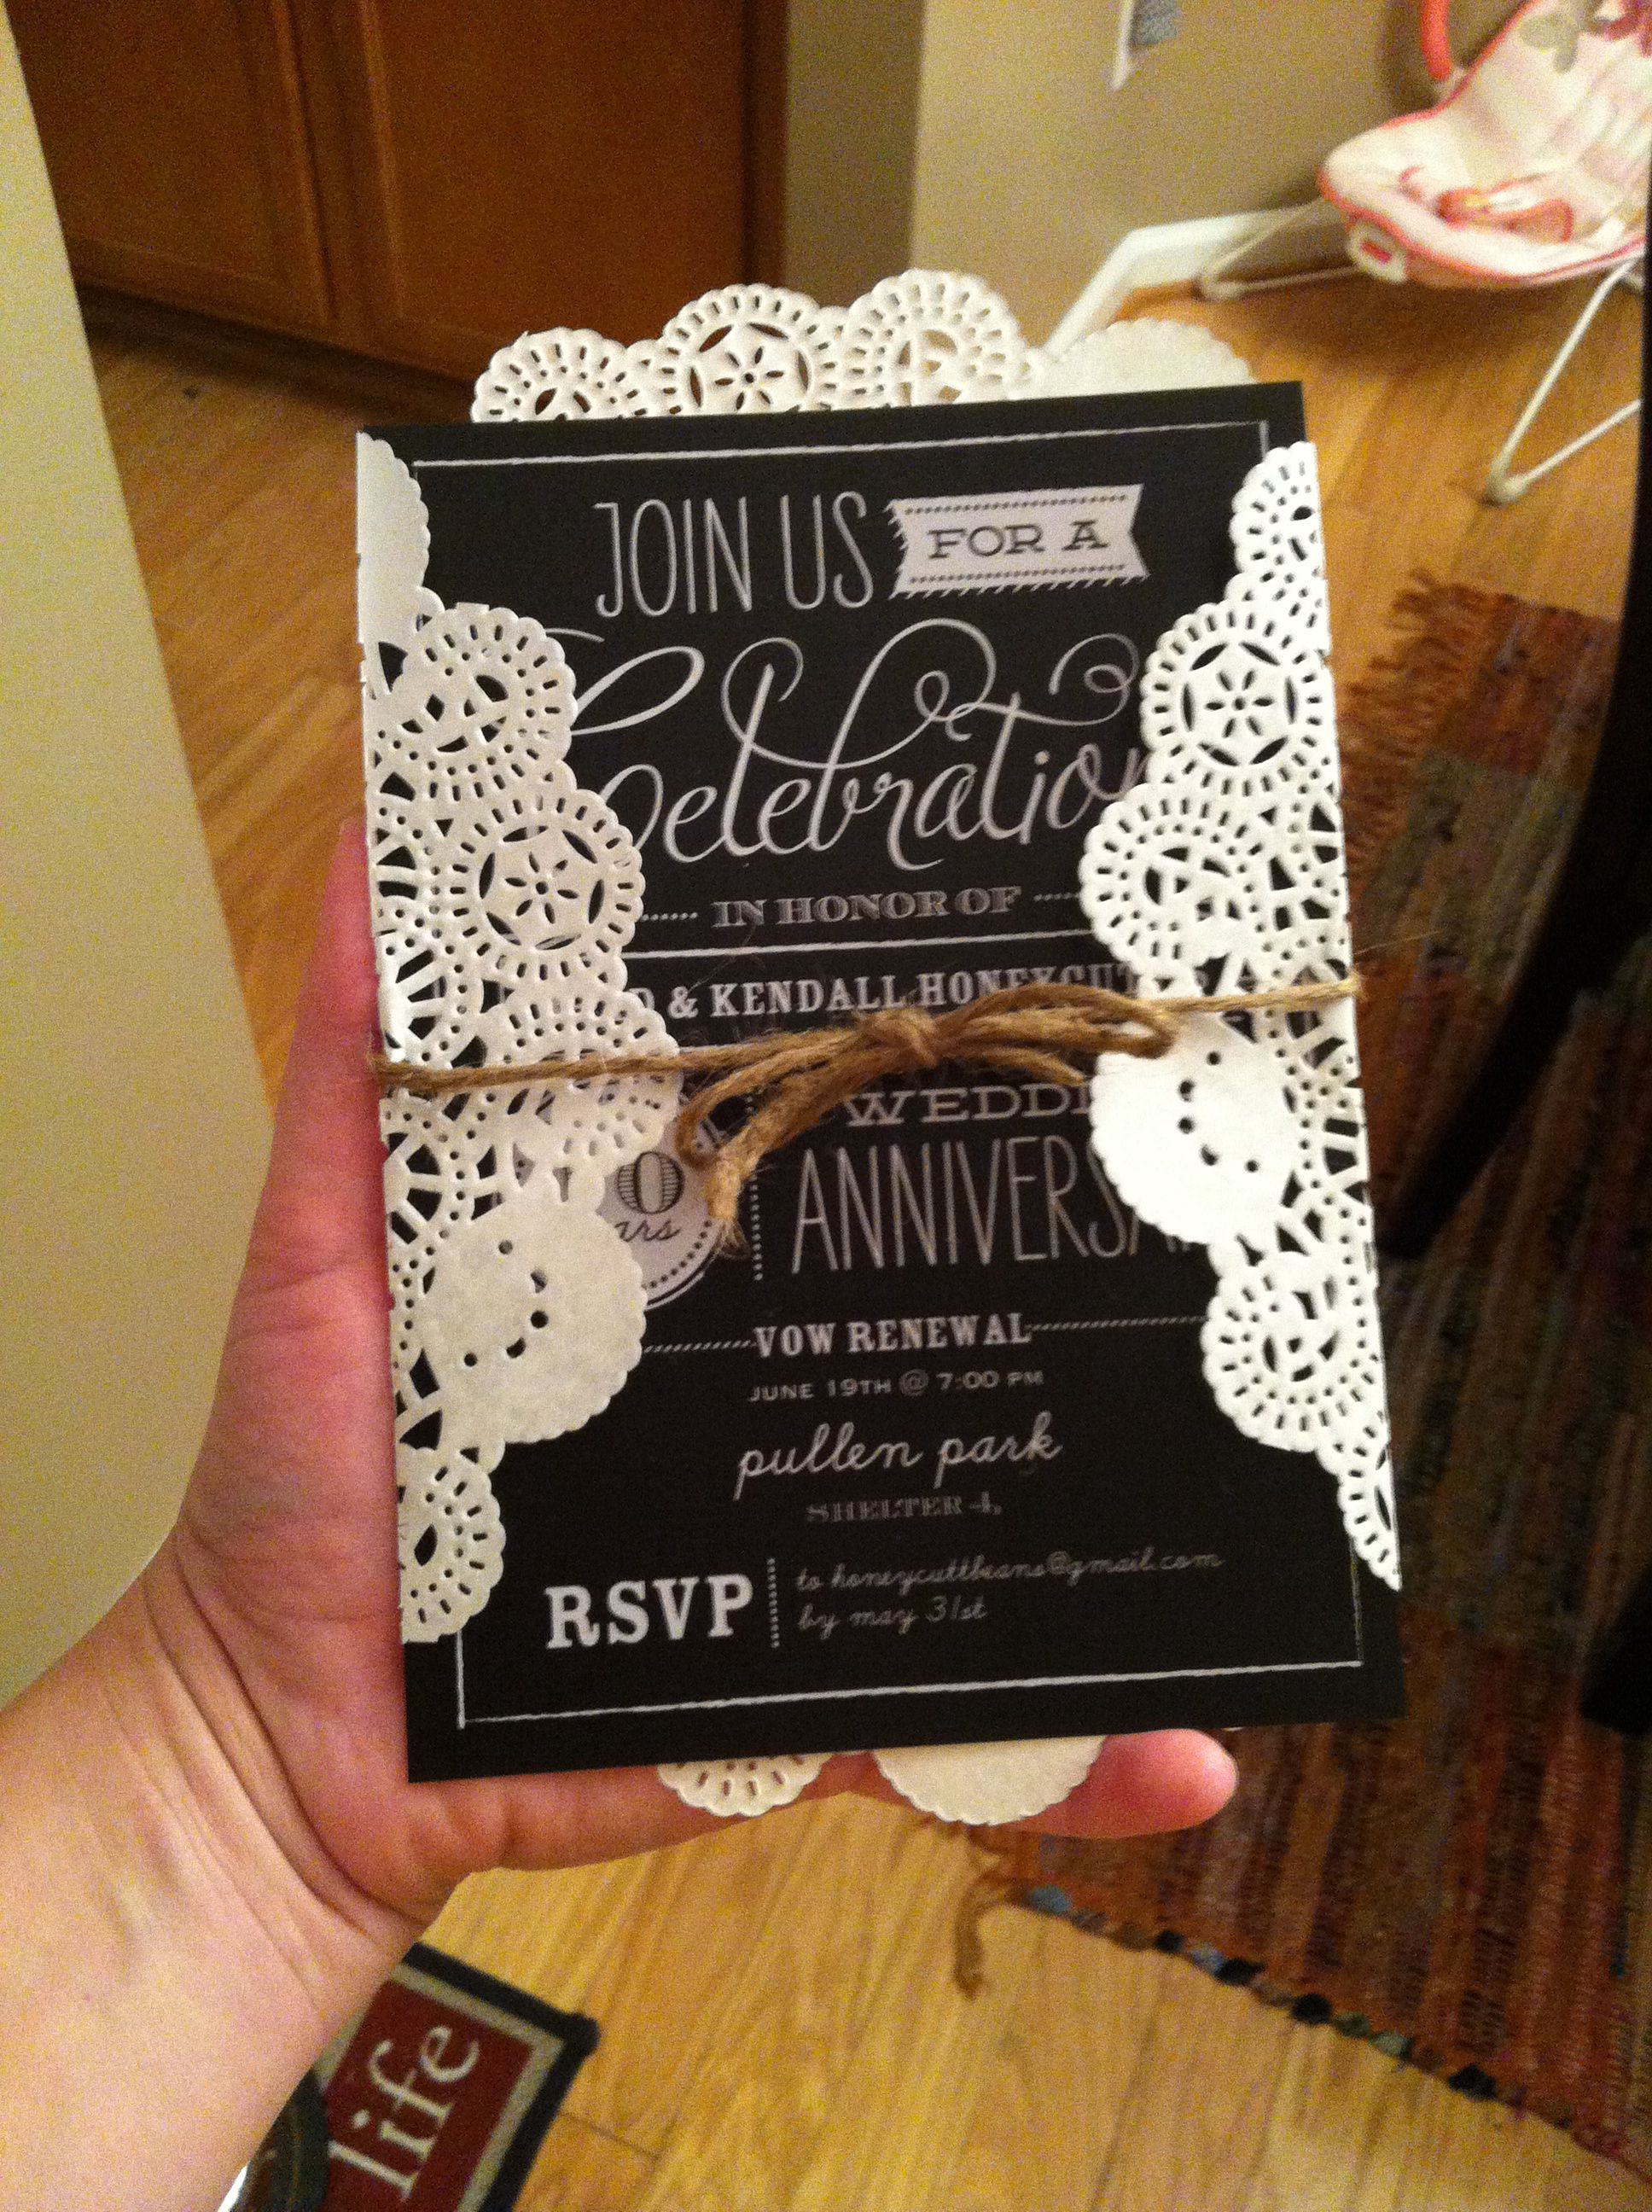 10 Year Wedding Renewal Invite from Shutterfly, used a 10